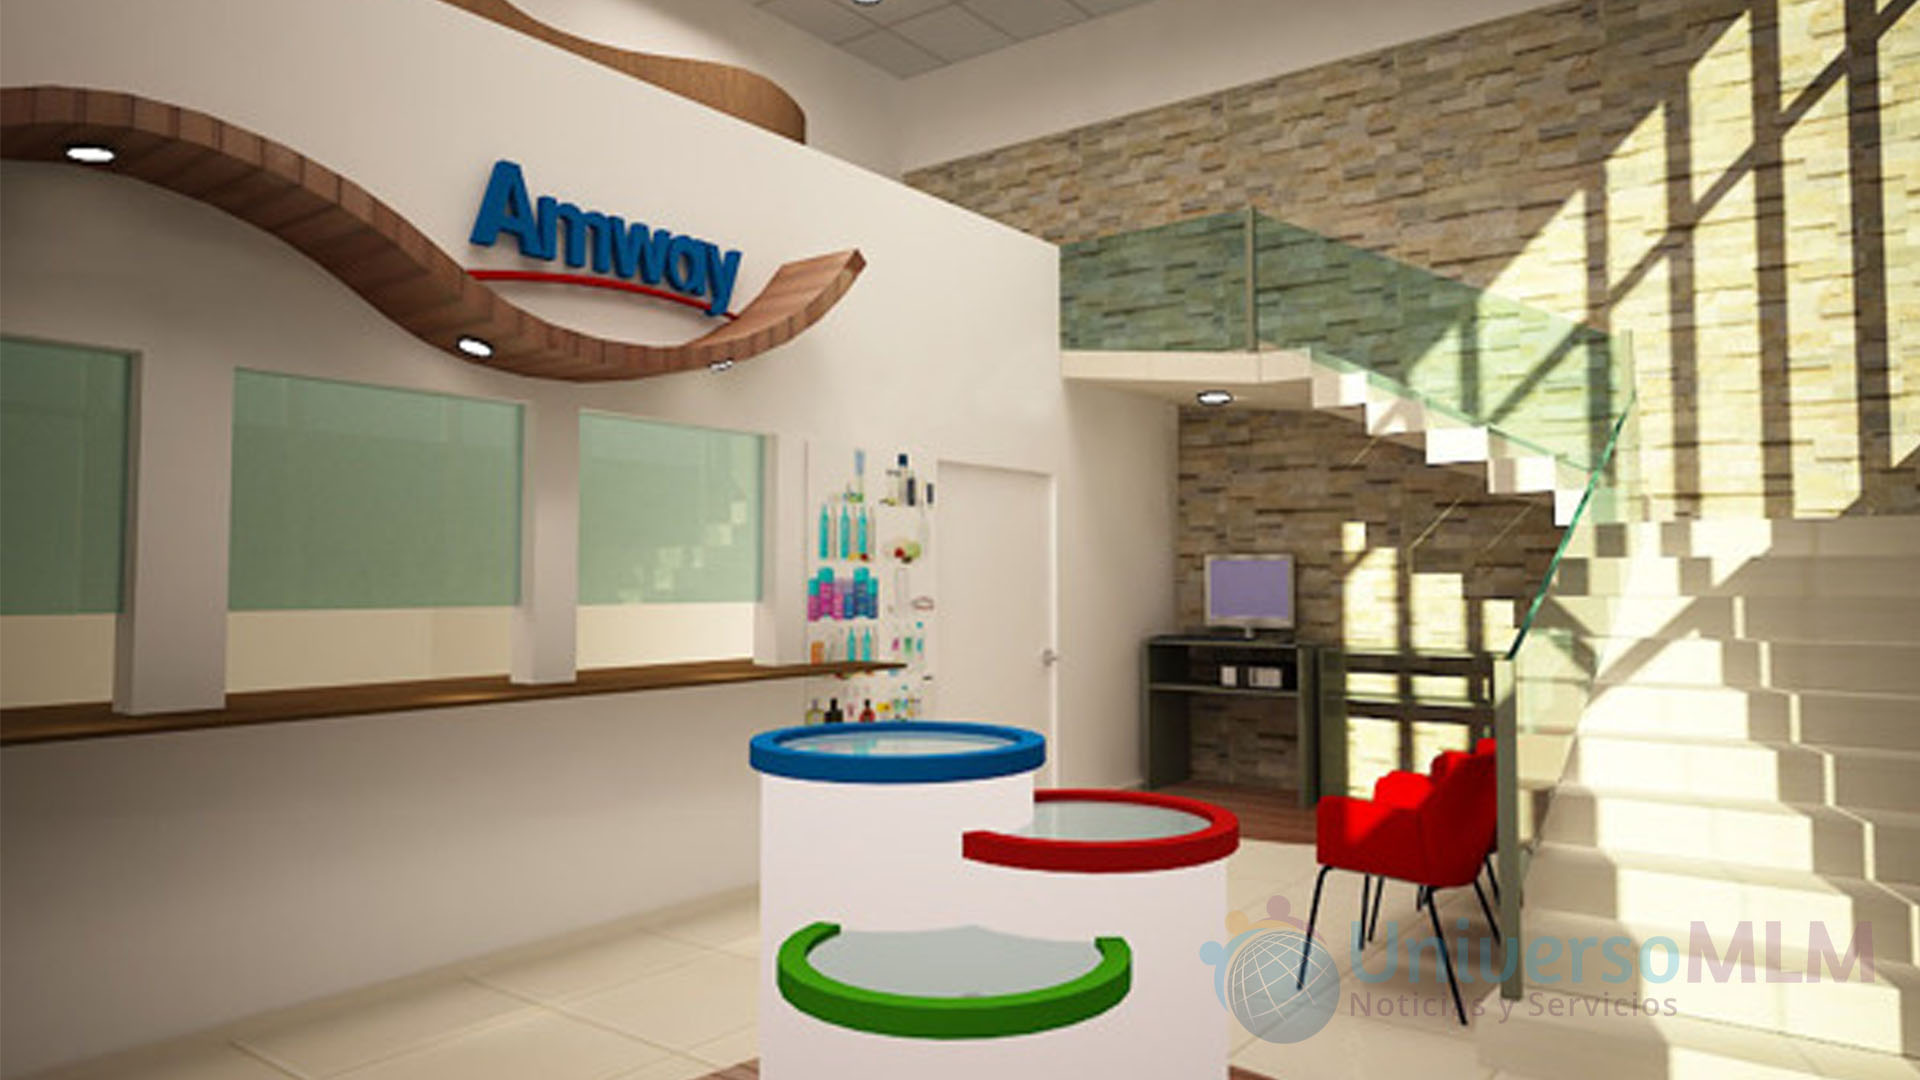 amway-mexico